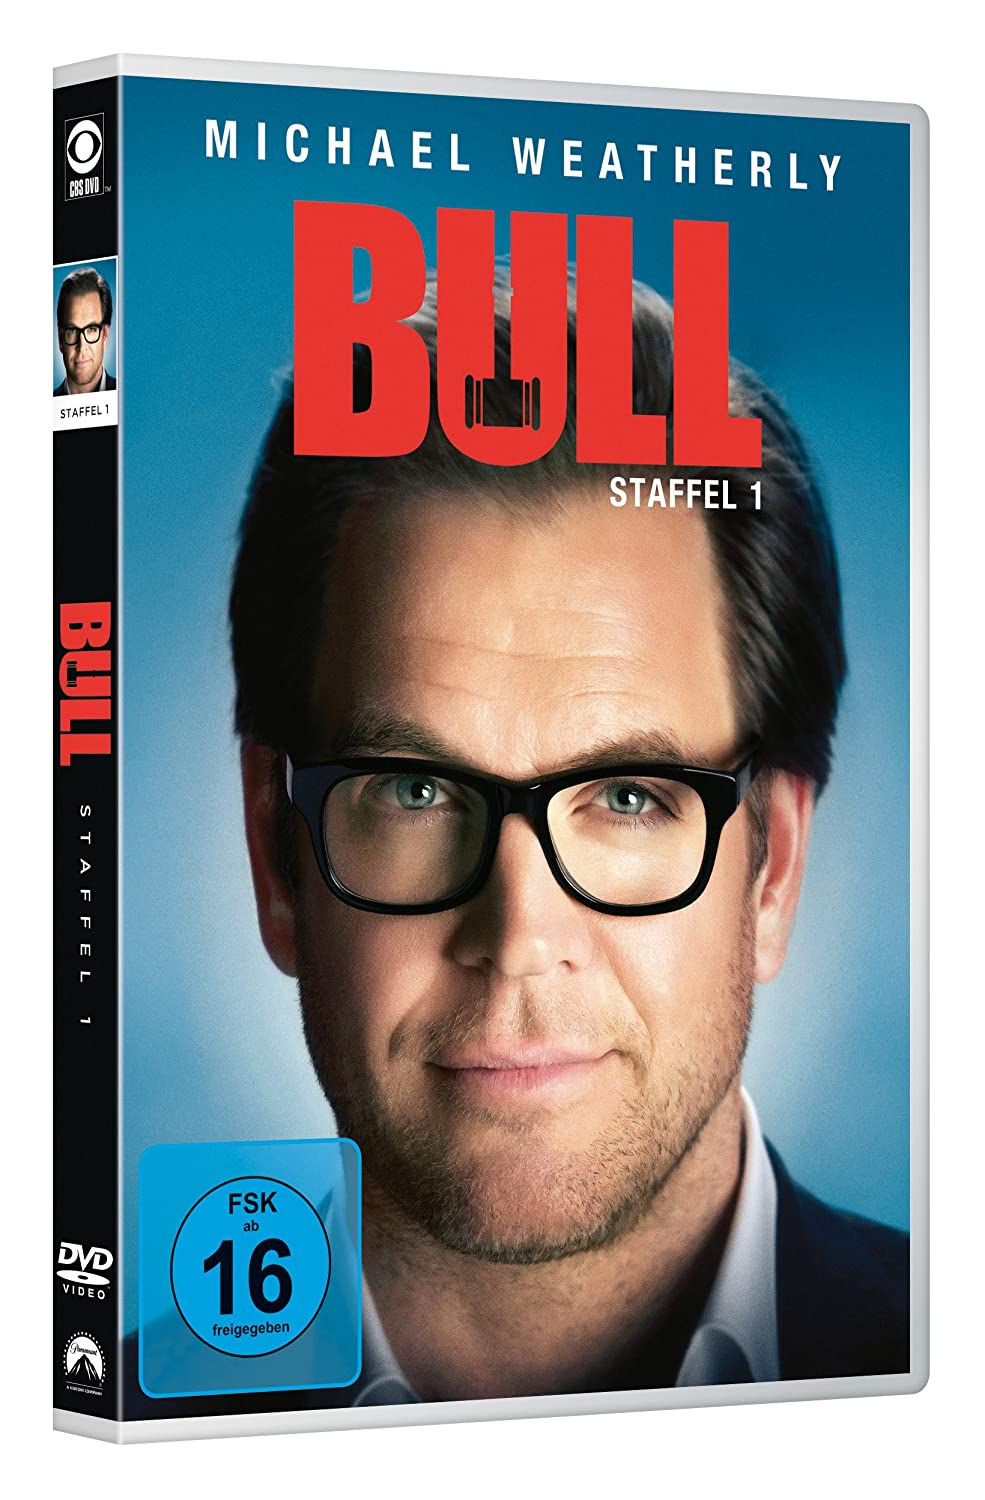 Bull - Staffel eins [6 DVDs]: Amazon.de: Michael Weatherly: DVD ...